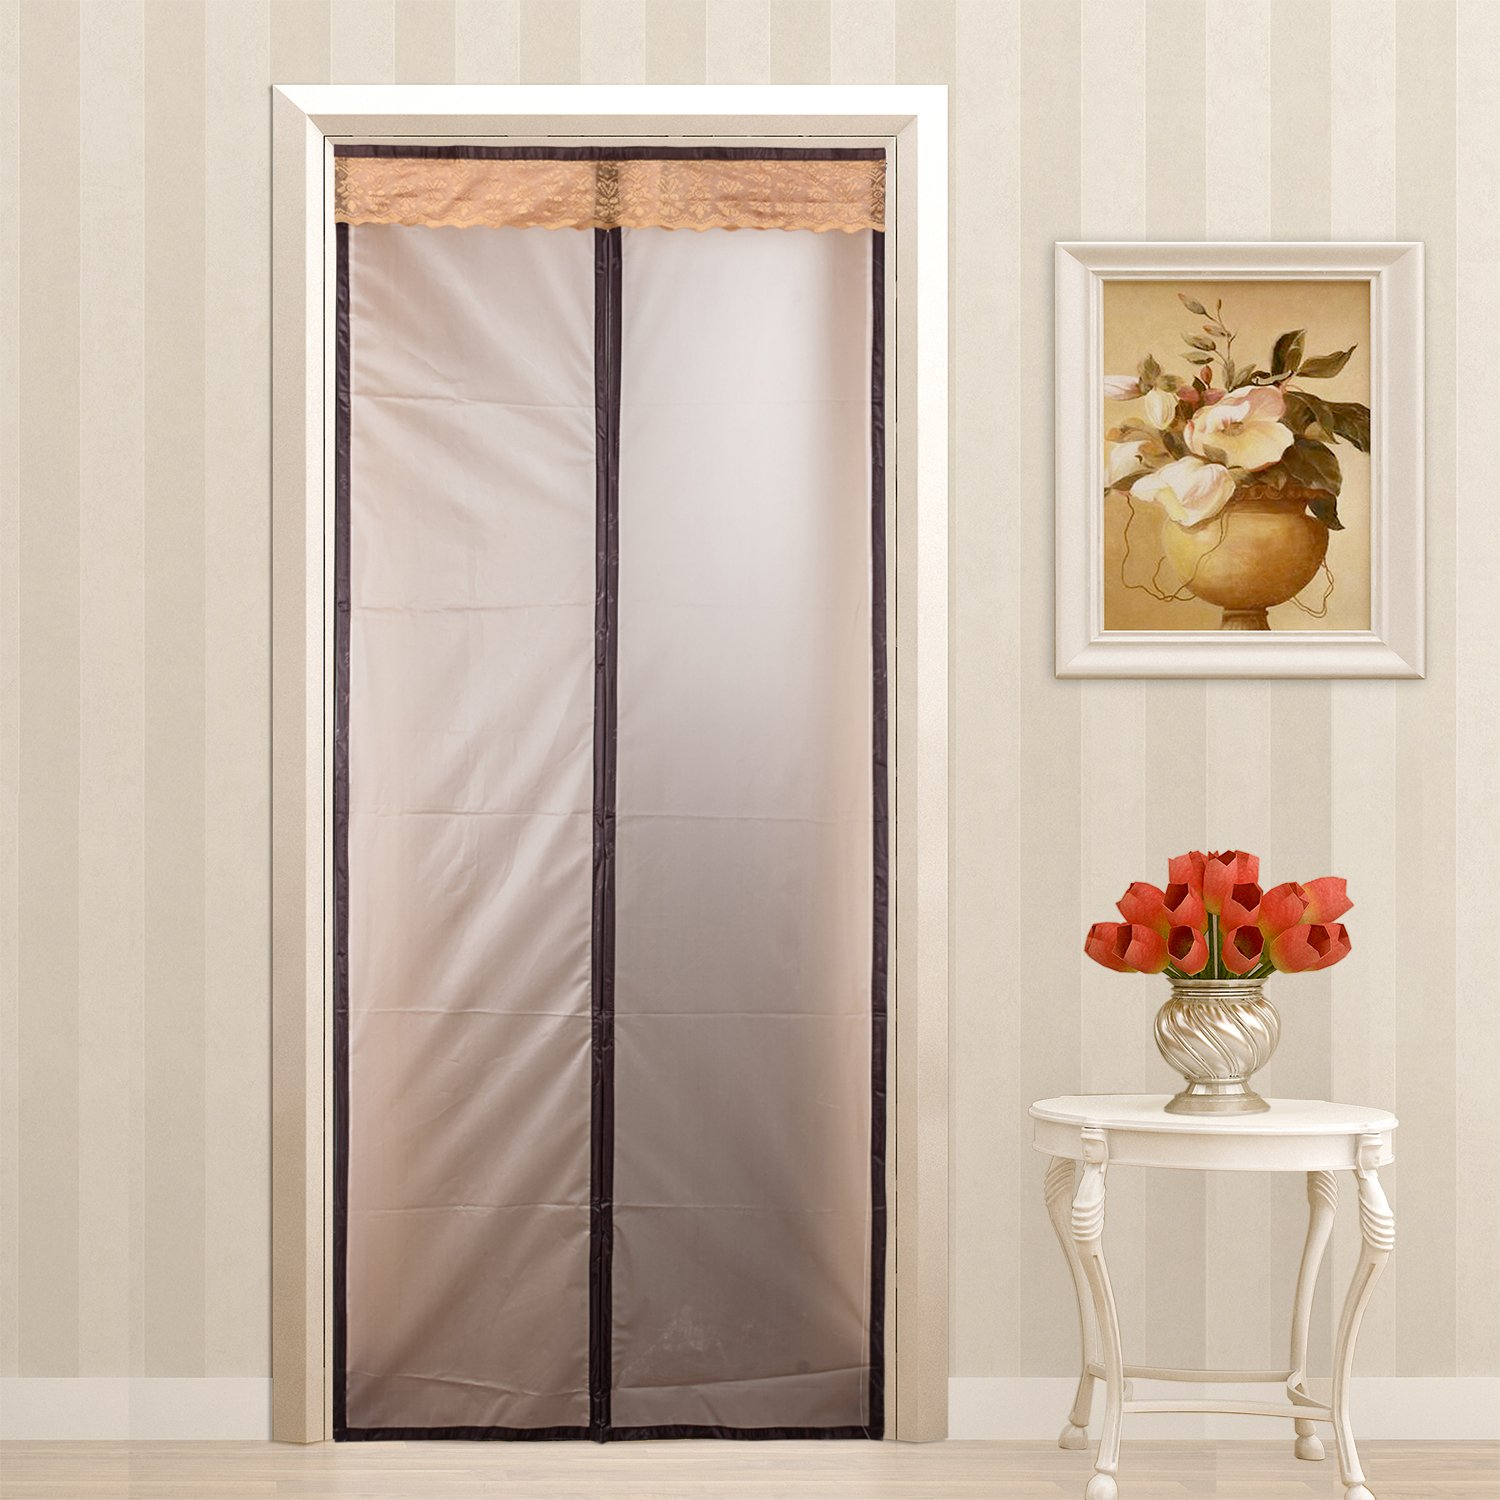 Magnetic Thermal Insulated Door Curtain Enjoy Your Cool Summer And Warm Winter With Saving You Money Door Curtain Auto Closer Fits Doors Up To 34\